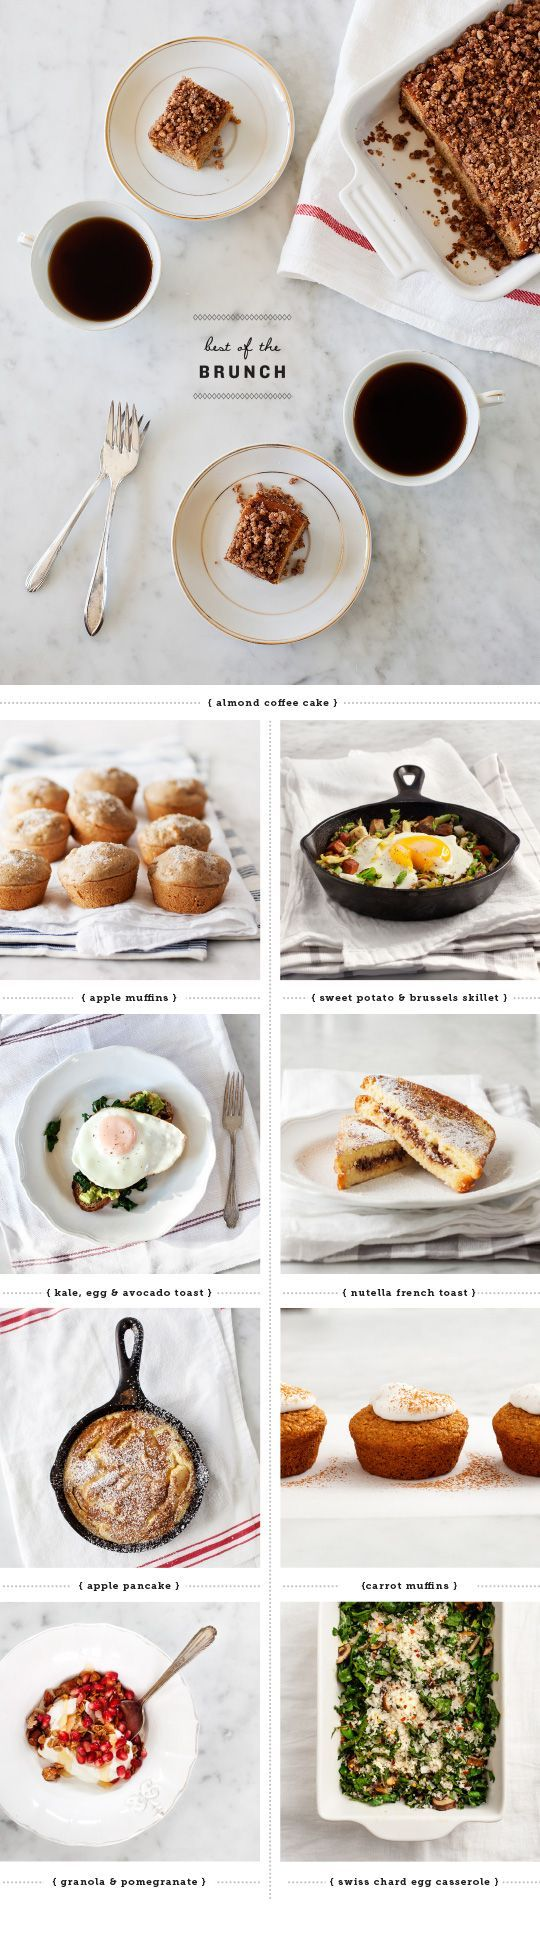 *9 Amazing Easter Brunch Ideas (1. Almond Coffee Cake, 2. Apple Muffins, 3. Sweet Potato & Brussels Sprouts Skillet, 4. Kale, Egg & Avocado Toast, 5. Nutella French Toast, 6. Apple Pancakes, 7. Carrot Muffins, 8. Granola & Pomegranate Breakfast Bowl, 9. Swiss Chard Egg Casserole)